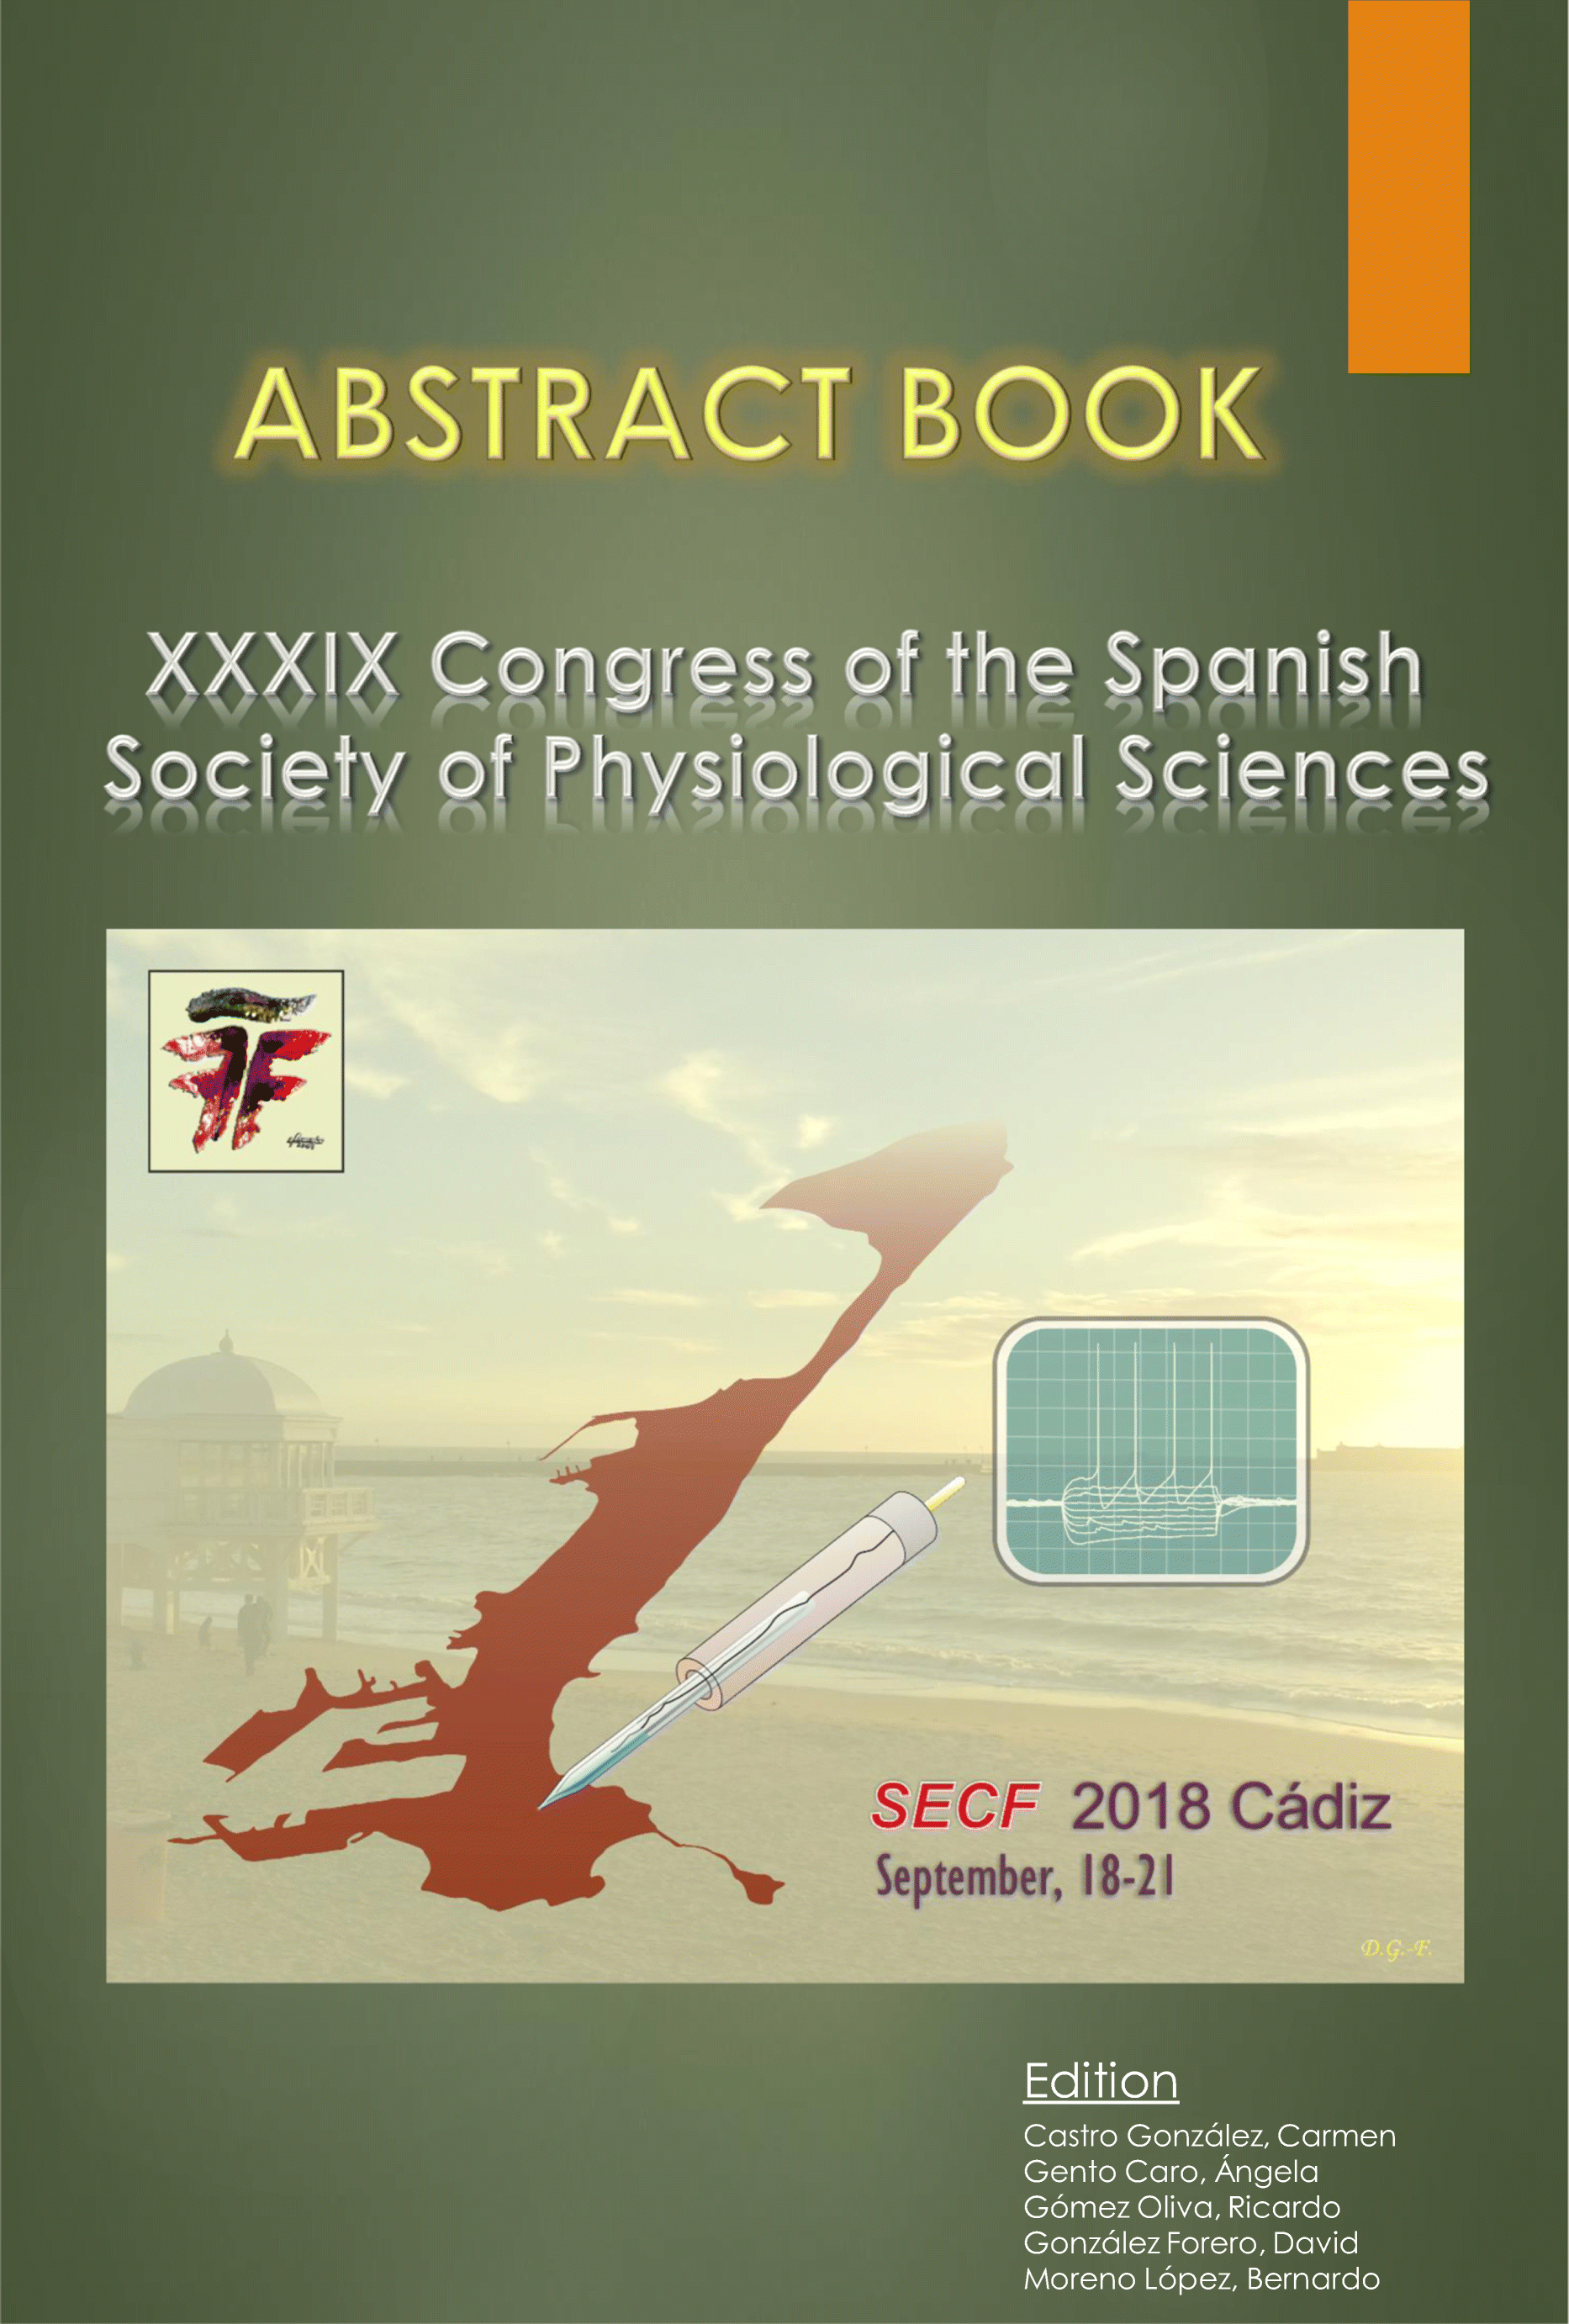 Isabel Garcia Lorca Nude abstracts of the xxxix congress of the spanish society of